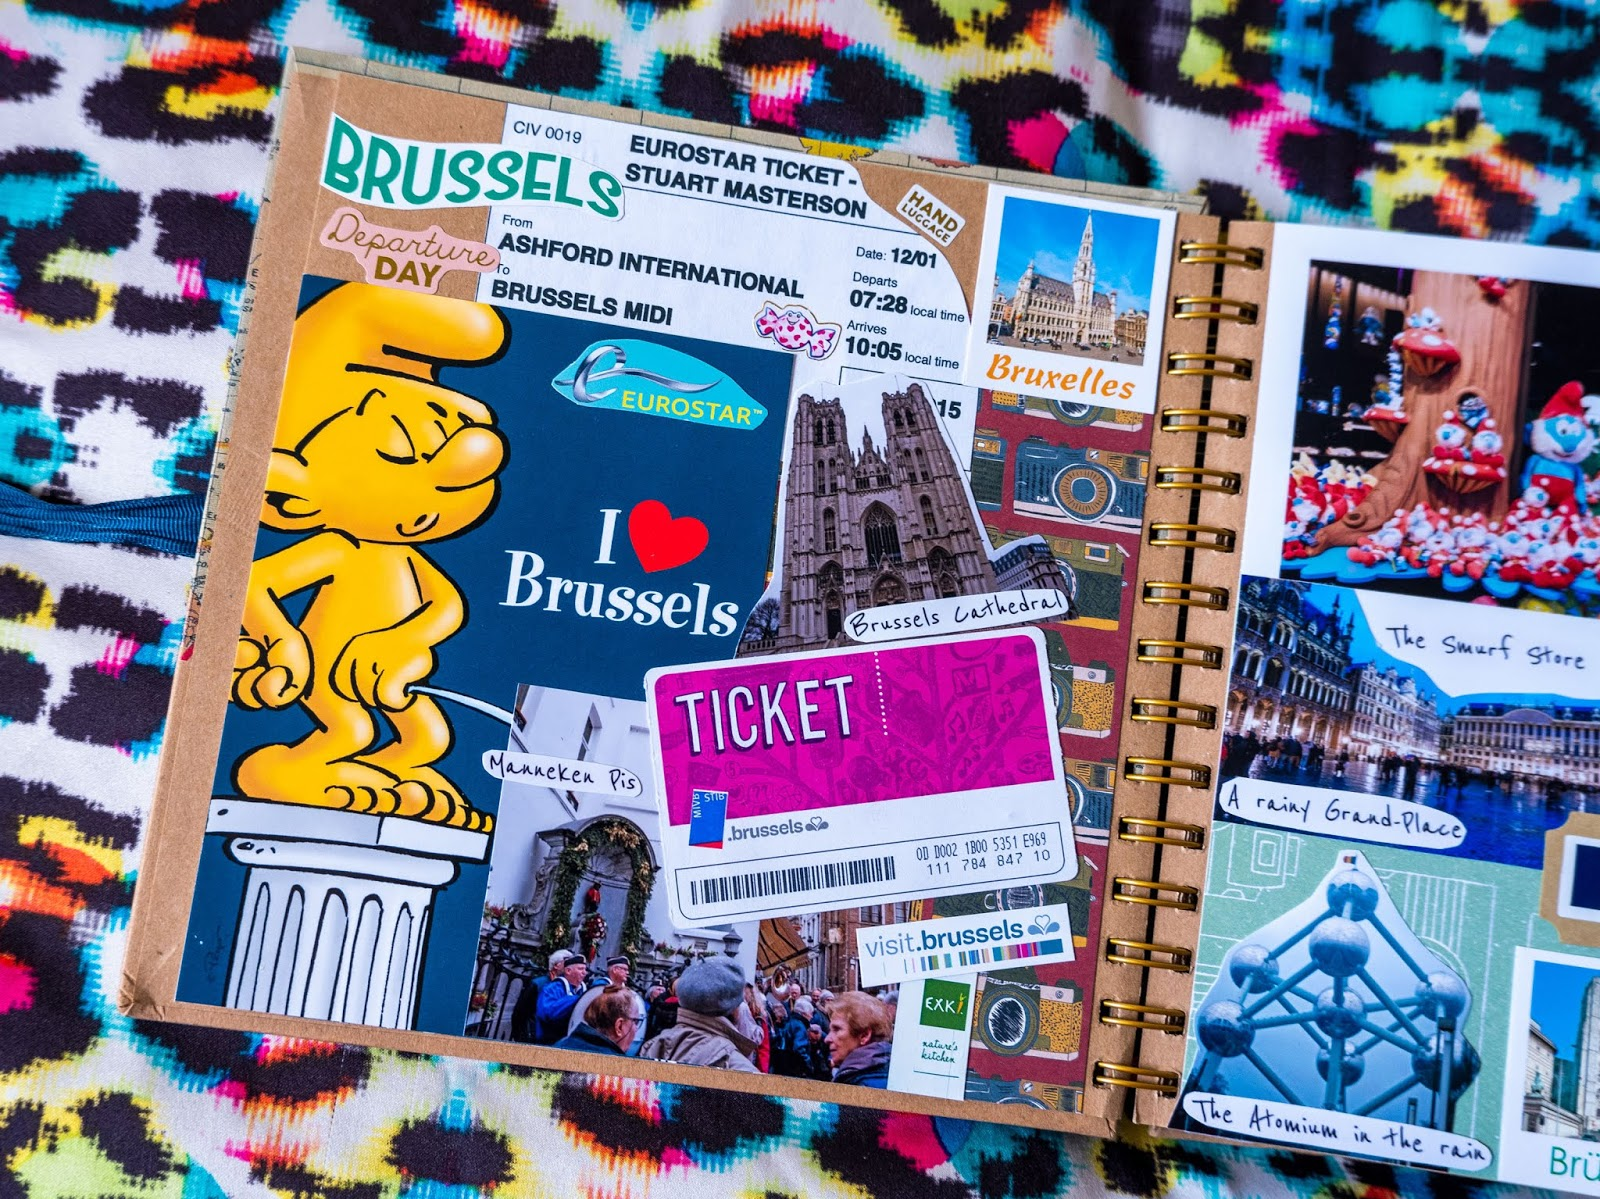 Brussels, Belgium pages in my 2019 travel scrapbooks